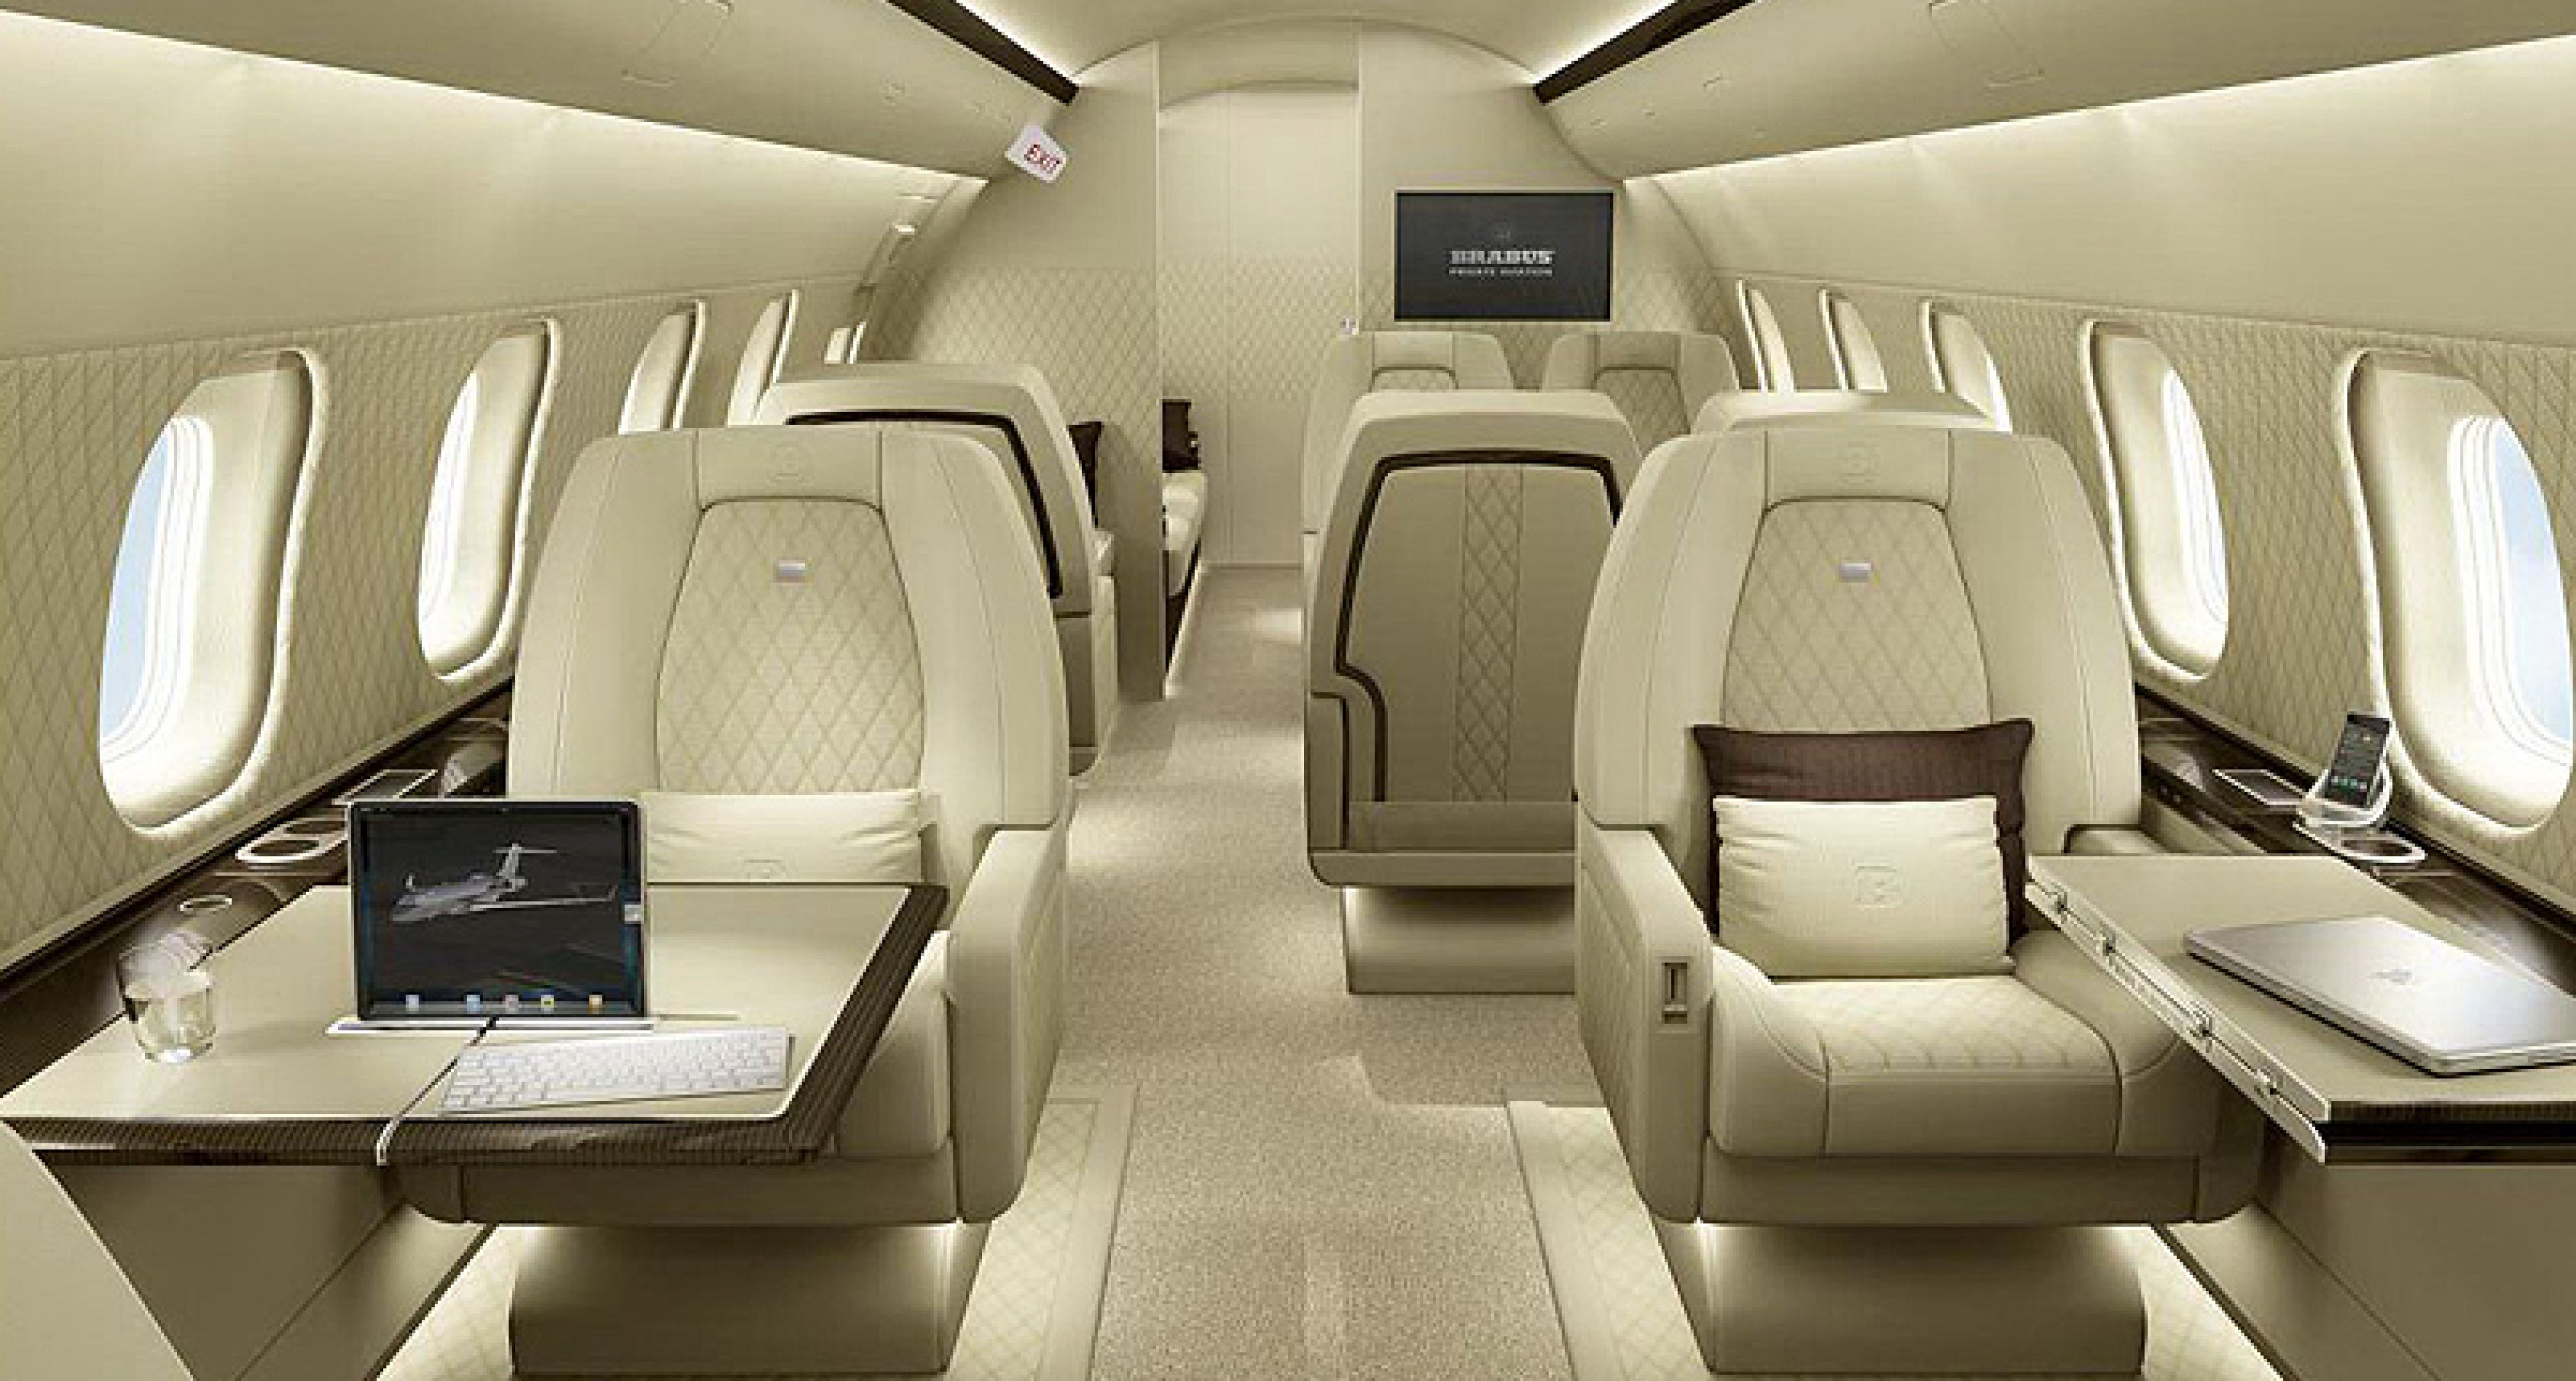 Brabus Private Aviation: Fliegend tiefergelegt